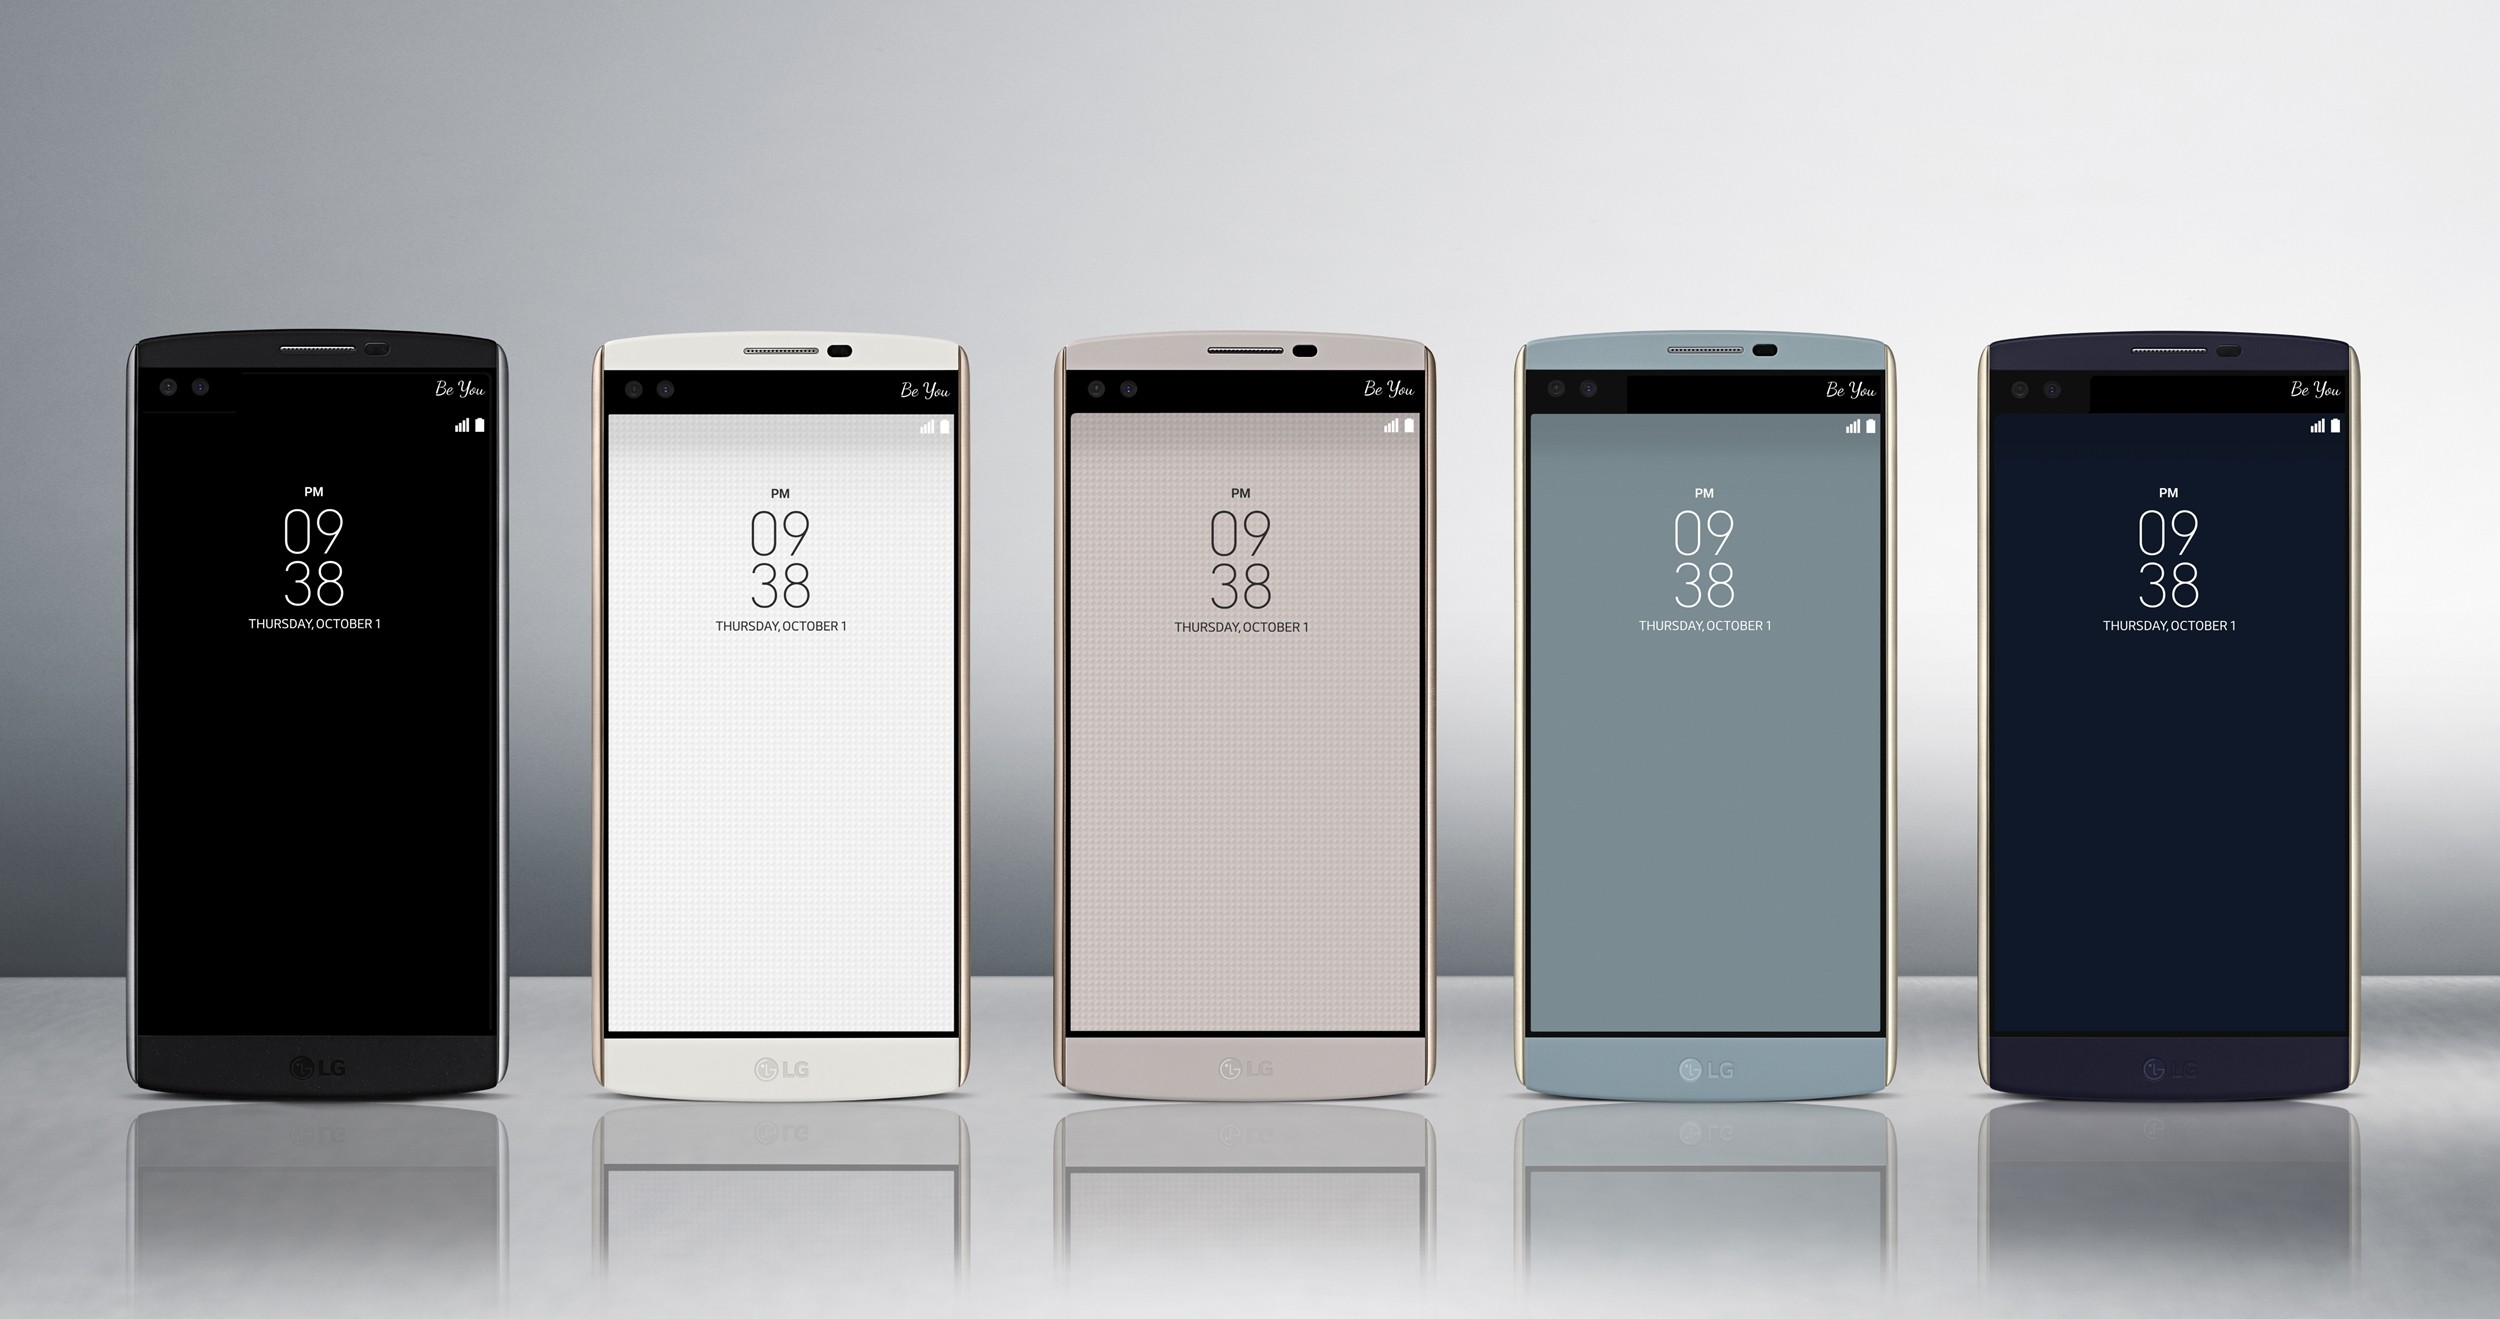 LG V10 smartphone availability info and local promos - HardwareZone